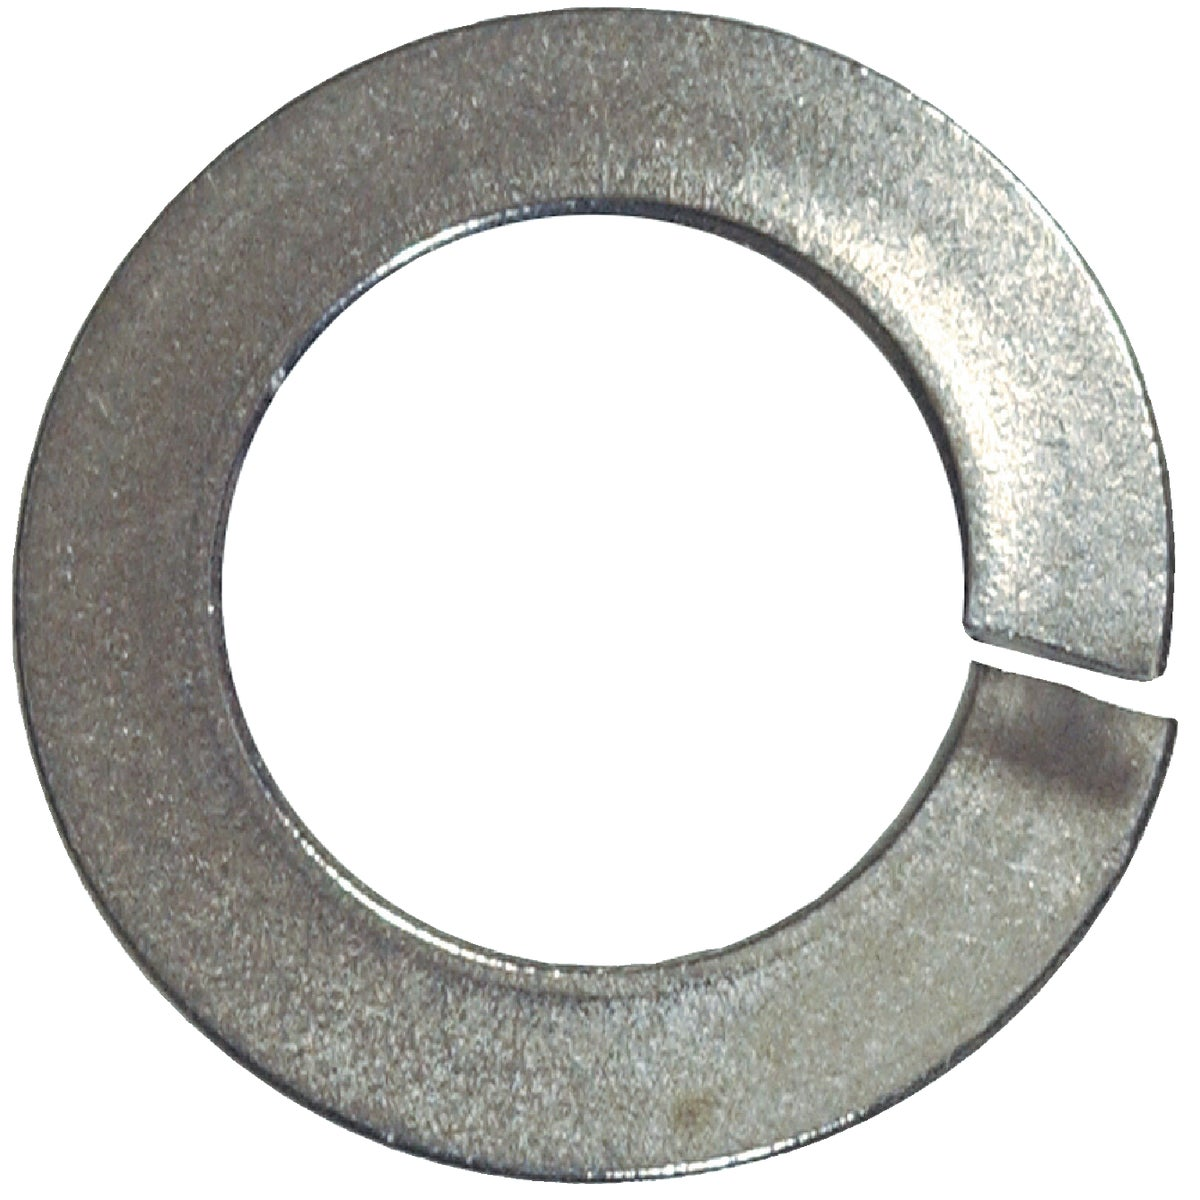 "5/16""SS SPLIT LOK WASHER - 830668 by Hillman Fastener"